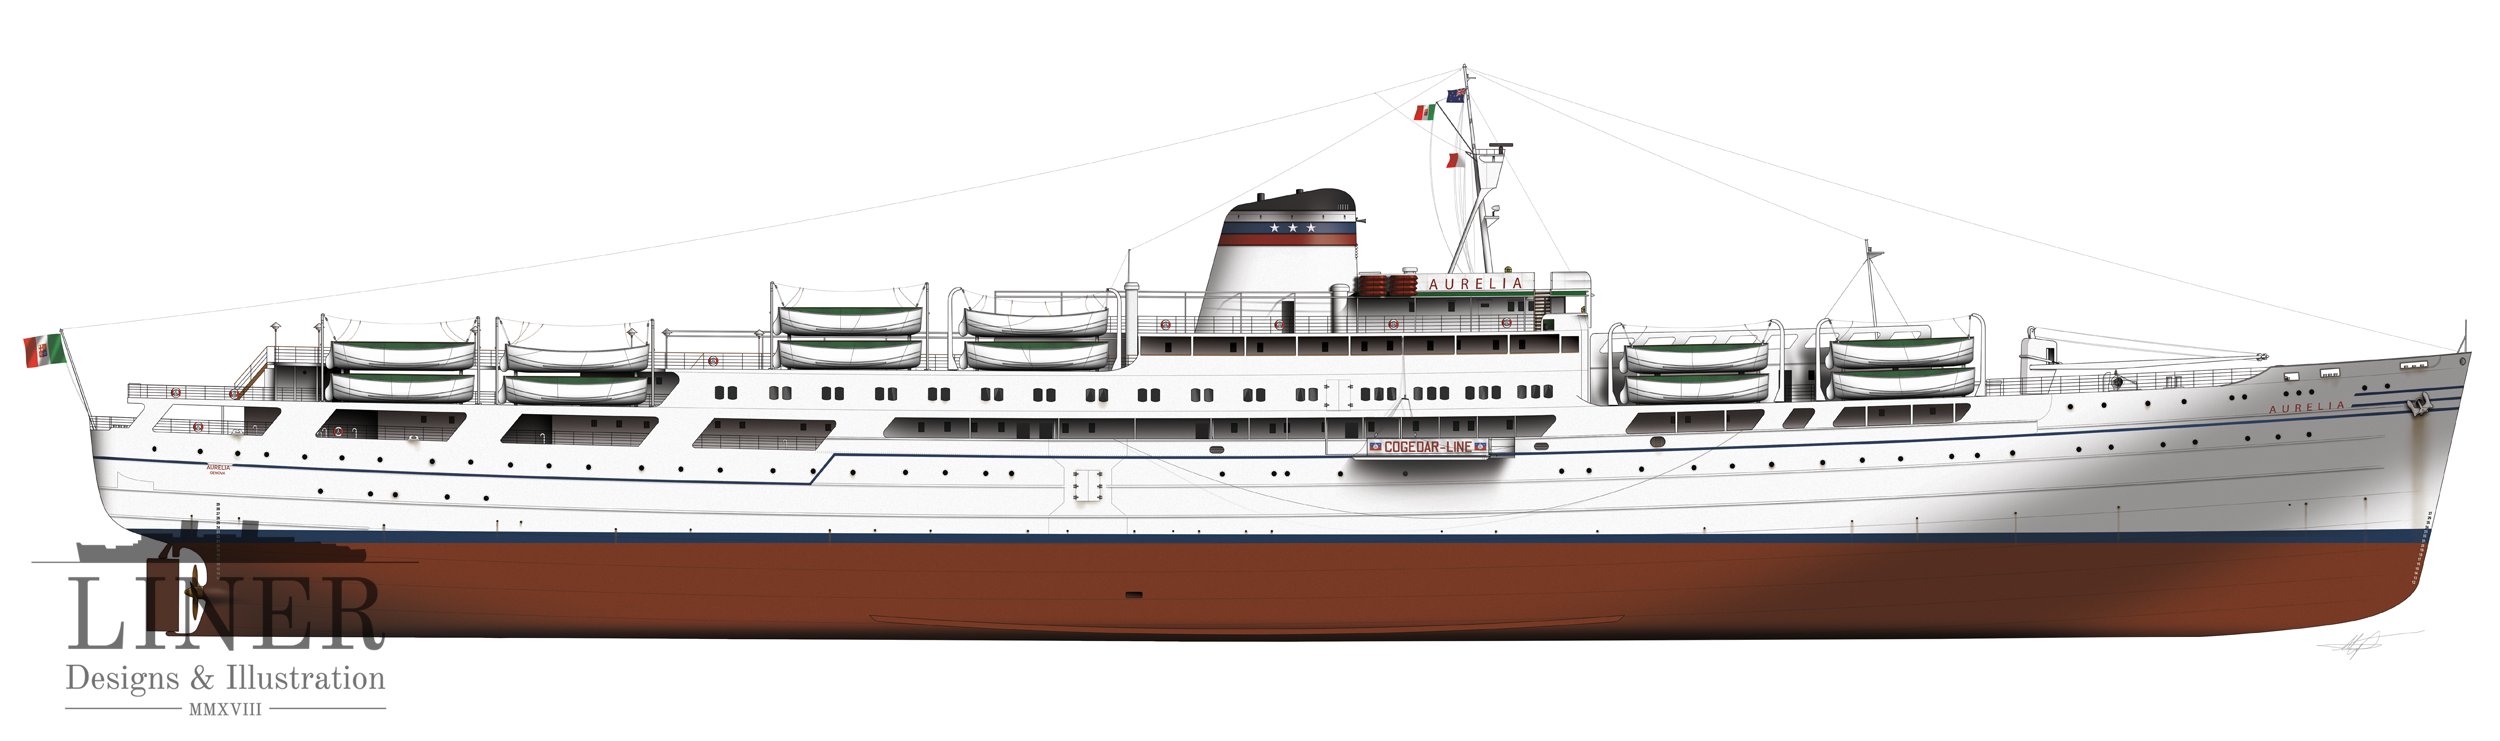 Aurelia in profile - seen here after her second re-fit in 1958 when she was further modernised. Image by Liner Designs and Illustration.  Learn more here.